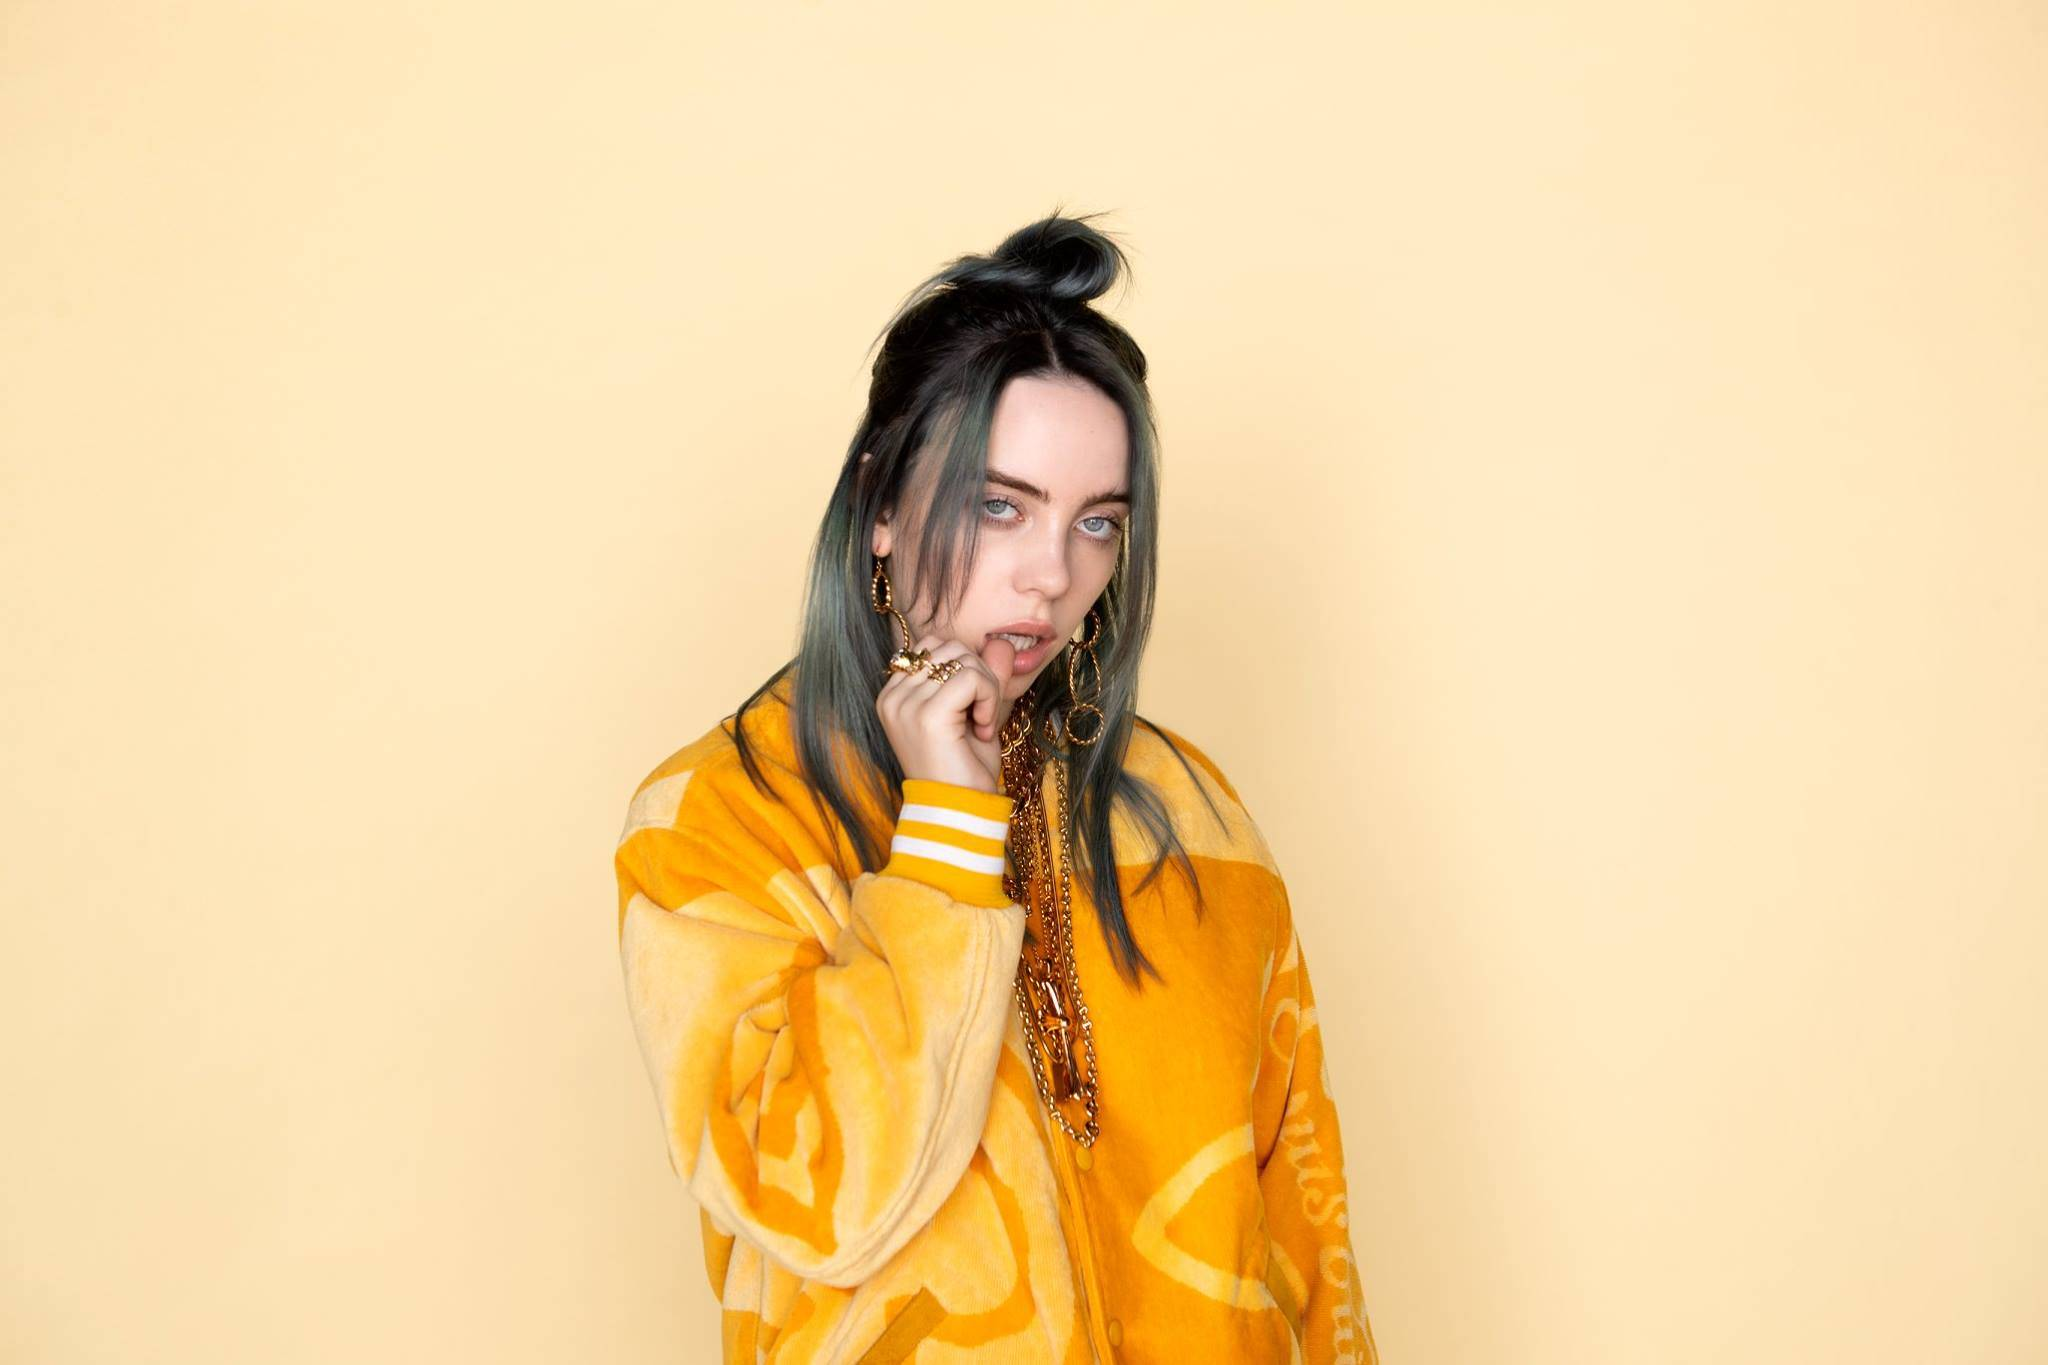 Billie Eilish confronts a world on fire in new video